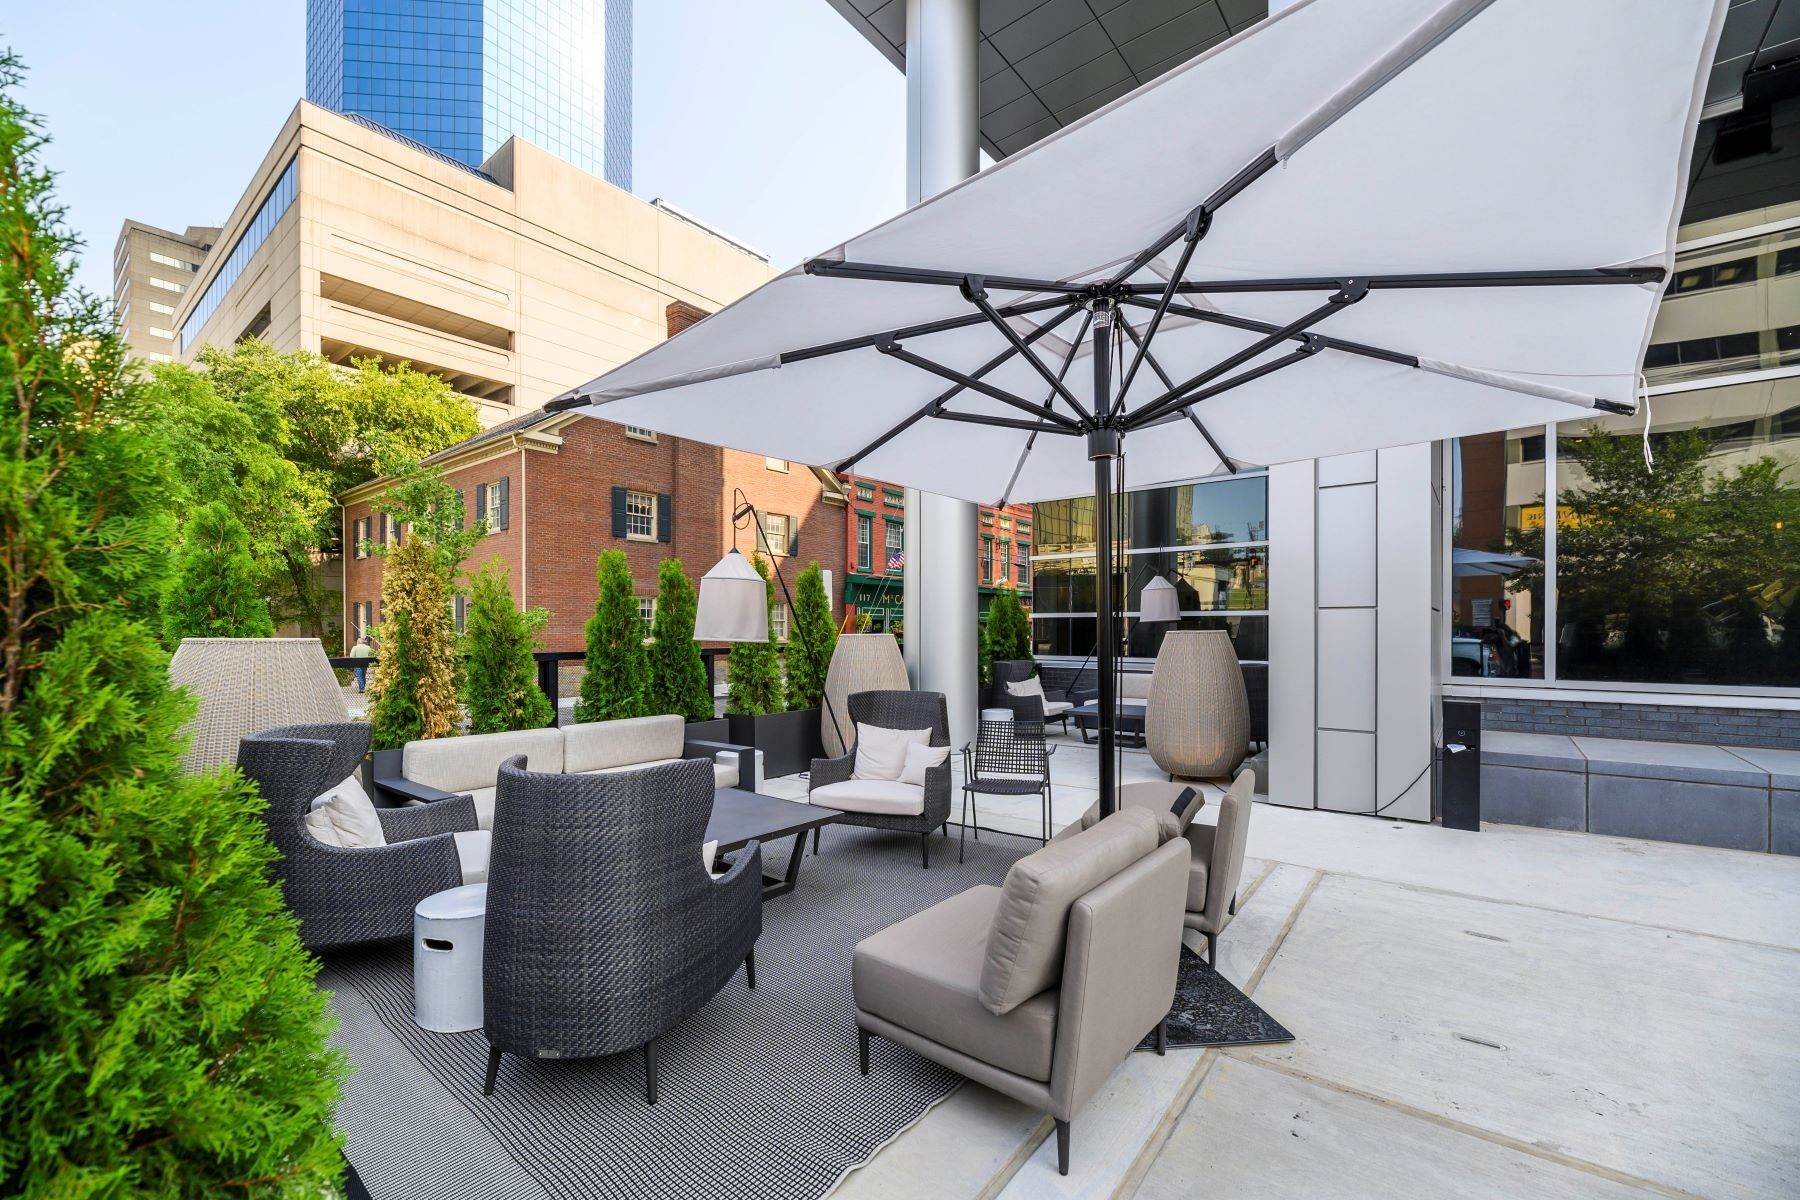 6. Condominiums for Sale at The Penthouses at City Center 103 S Limestone #1220 Lexington, Kentucky 40507 United States